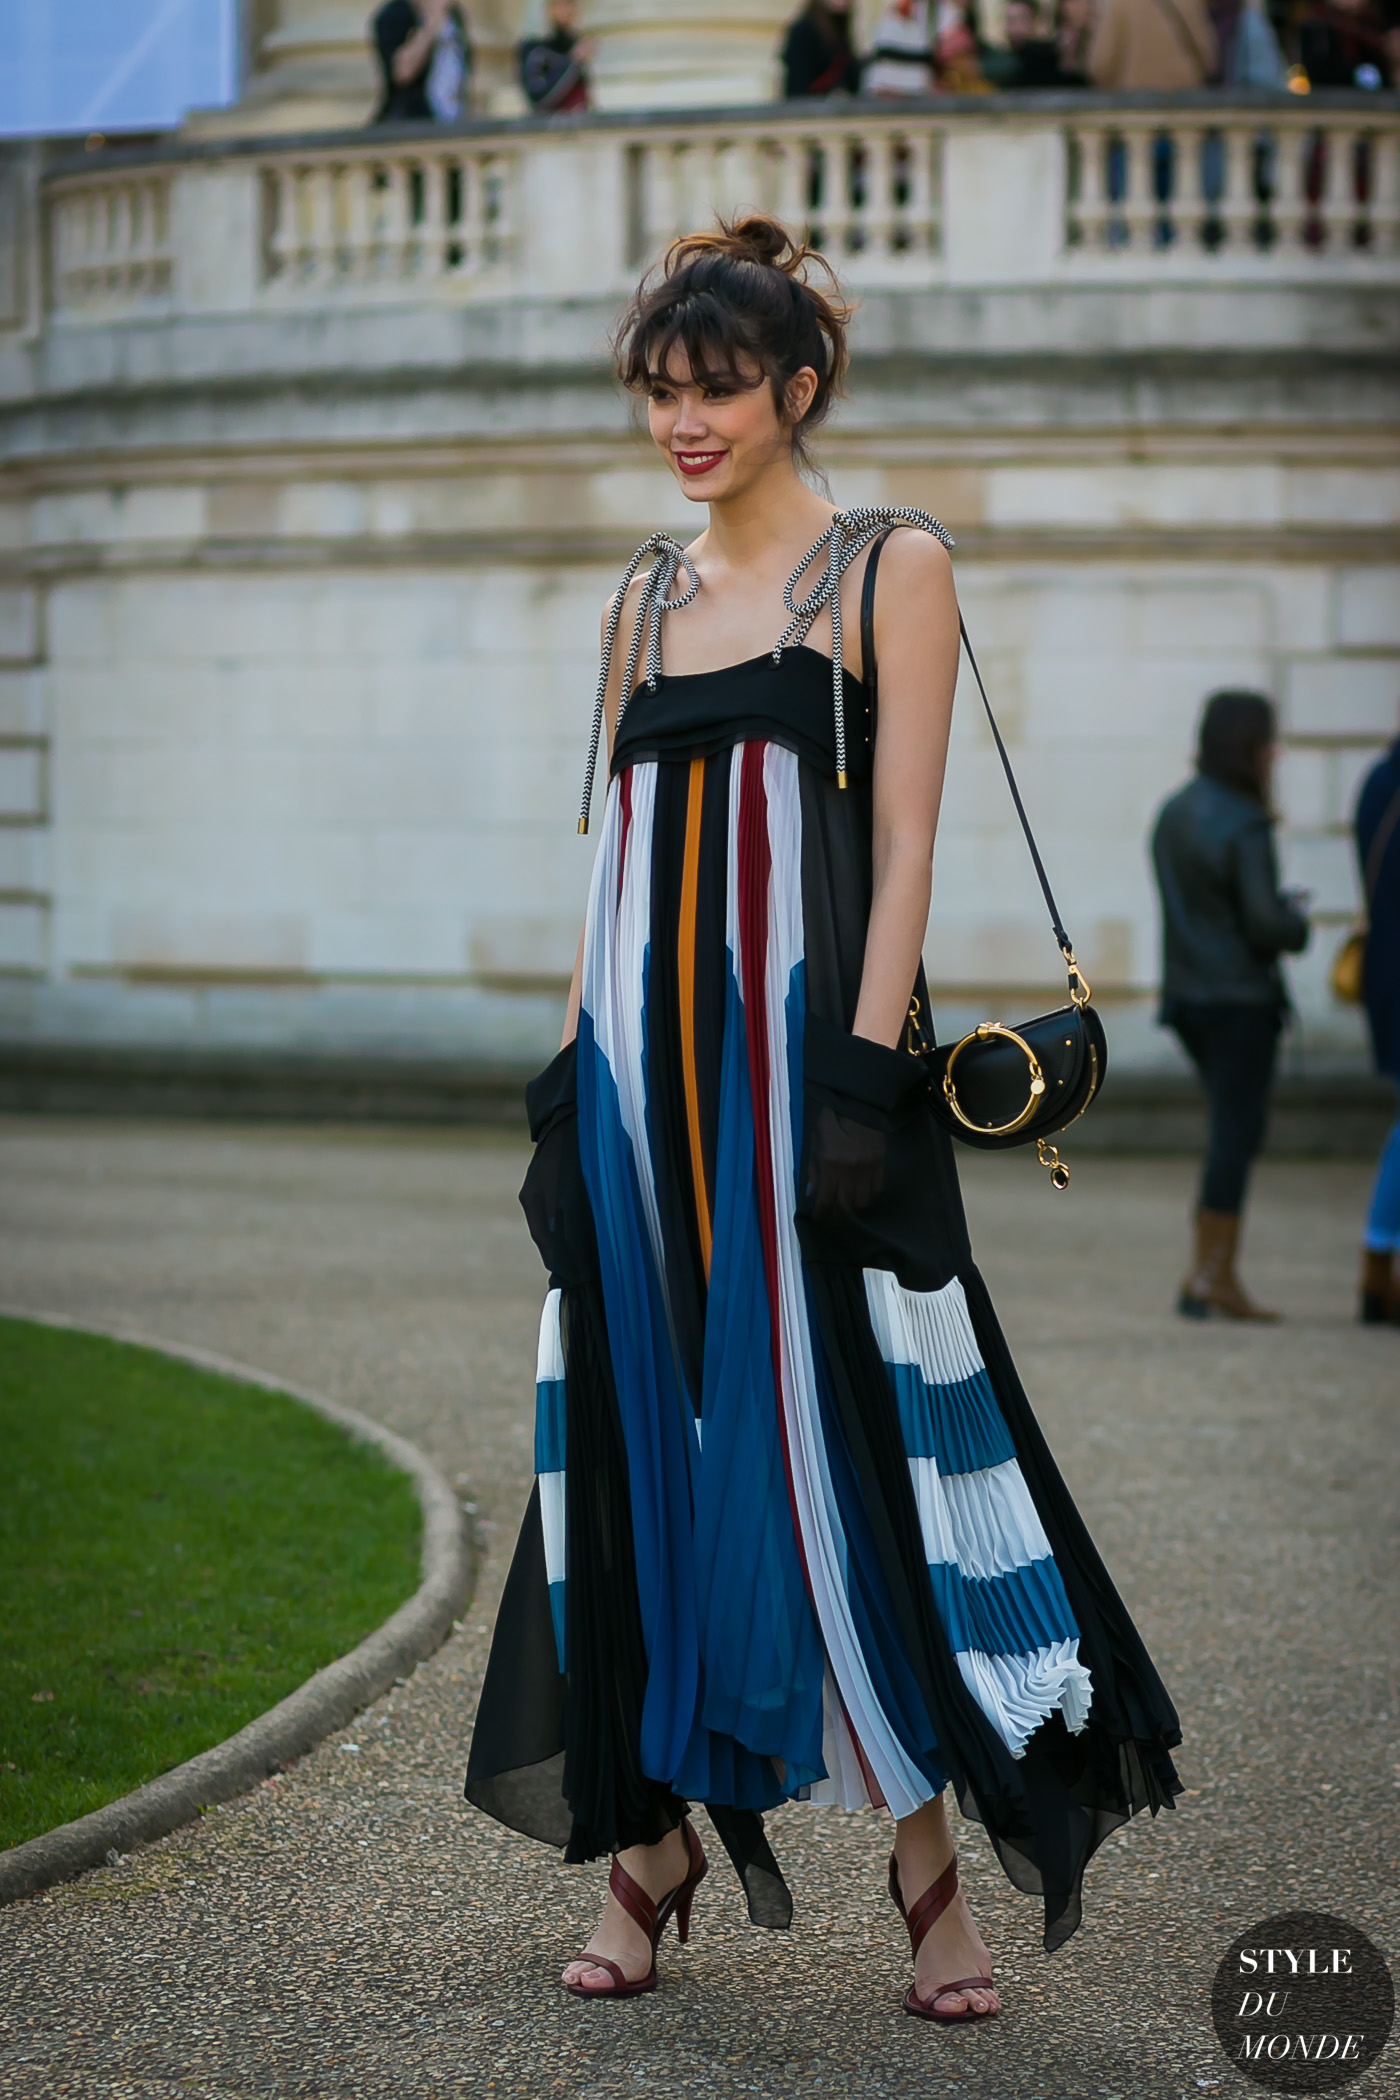 Hikari Mori After Chloe by STYLEDUMONDE Street Style Fashion Photography